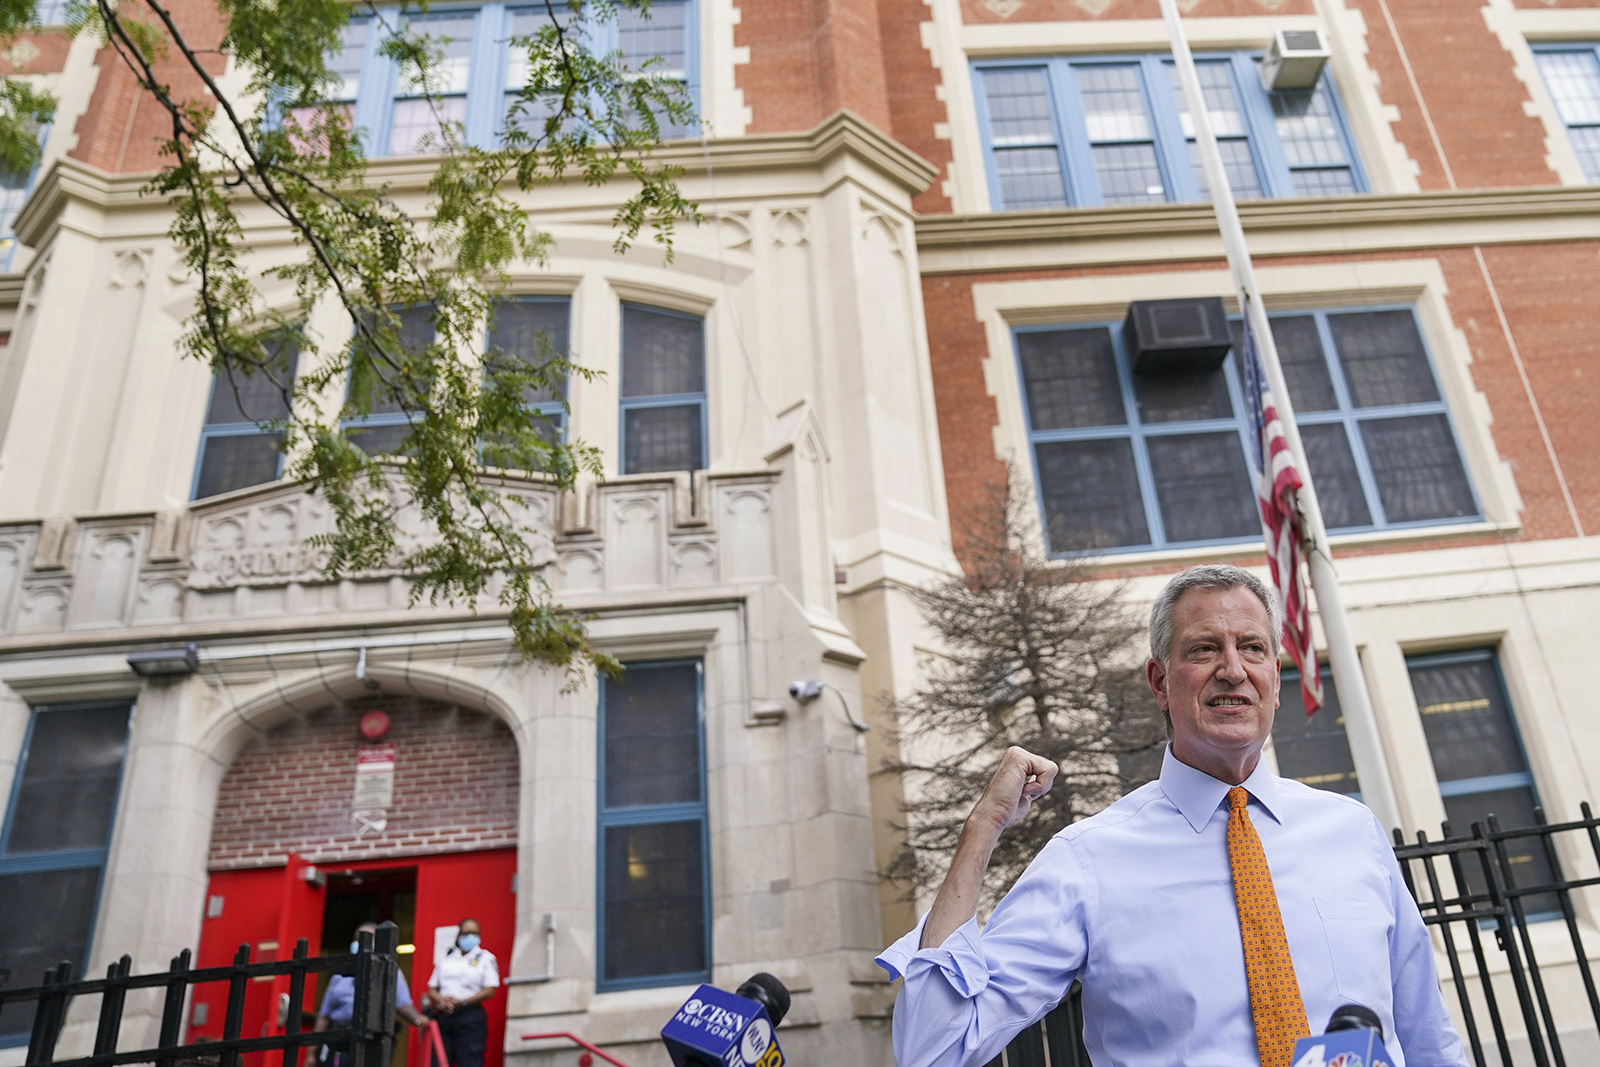 New York Mayor Bill de Blasio speaks to reporters after visiting New Bridges Elementary School to observe pandemic-related safety procedures, in the Brooklyn borough of New York on August 19.